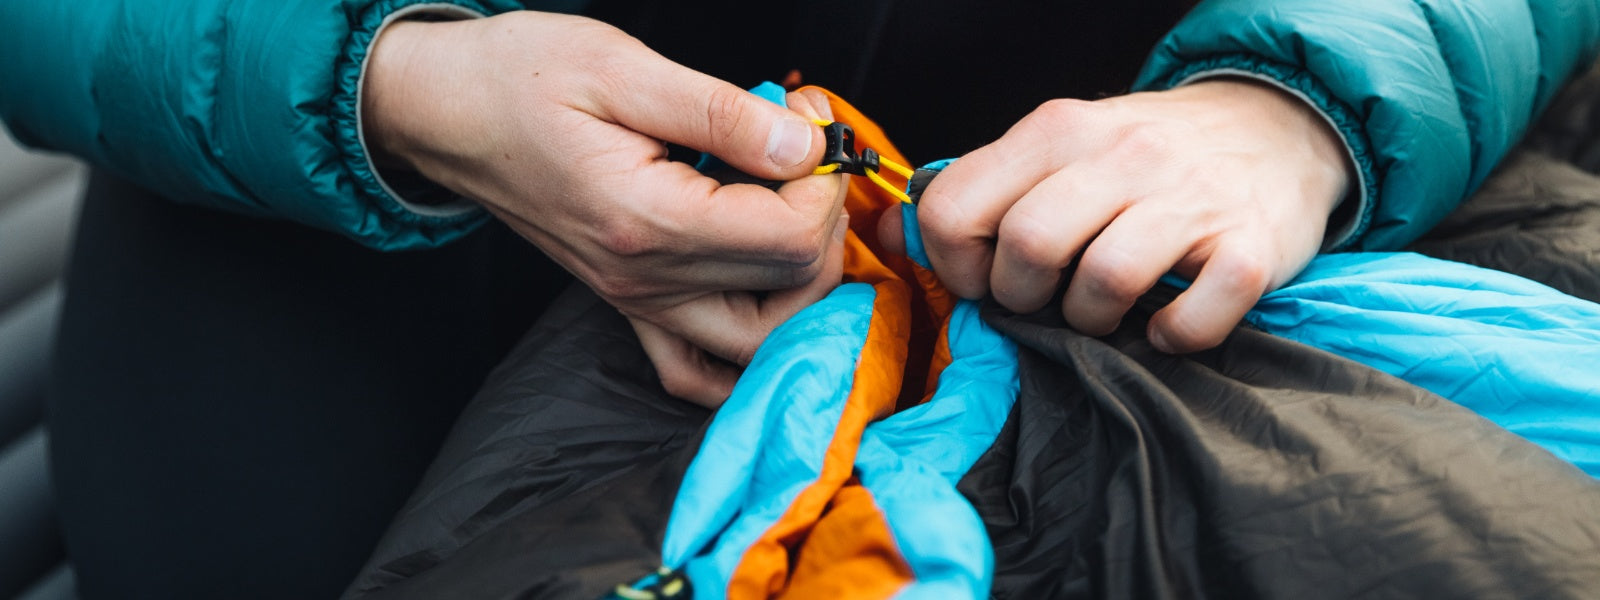 Hooks and loops are versatile and nearly weightless compared to the bulk and weight of zippers. They take a little more explaining, but once you get the hang of them, set up is a breeze!